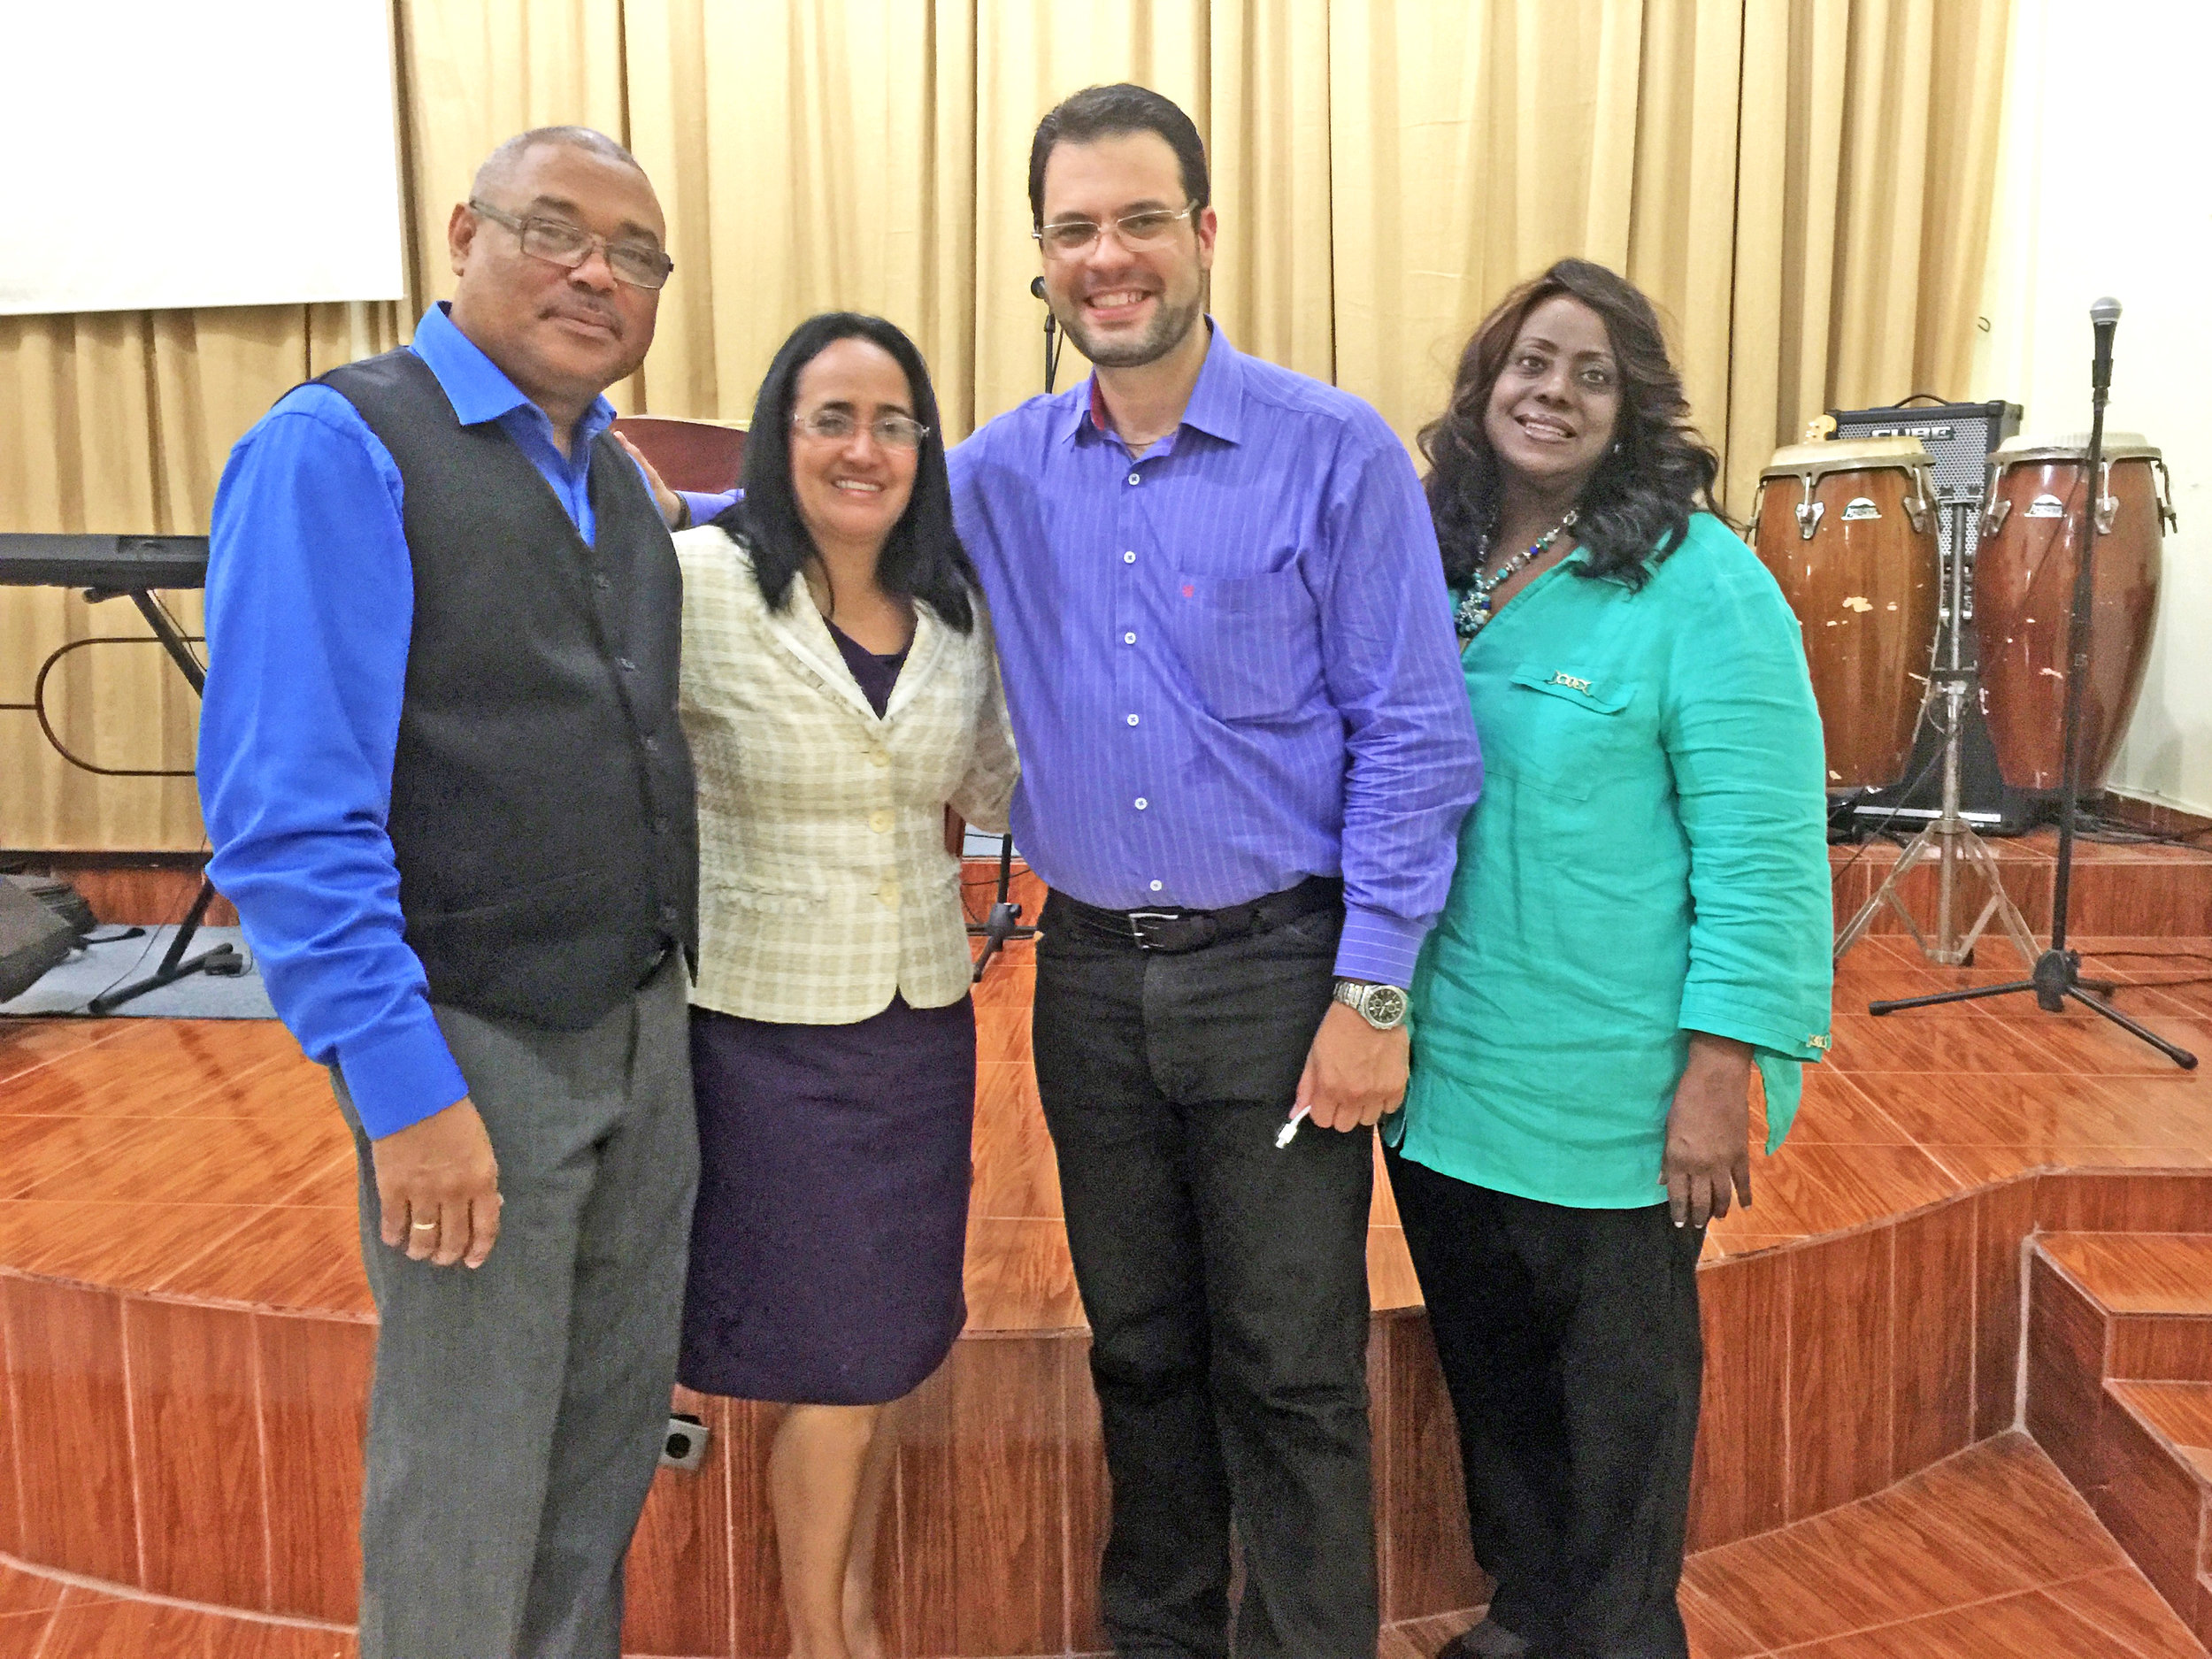 Frank Gonzalez, second from the right, is working with other ministry leaders across Latin America to make Crown materials more accessible for Spanish speakers.